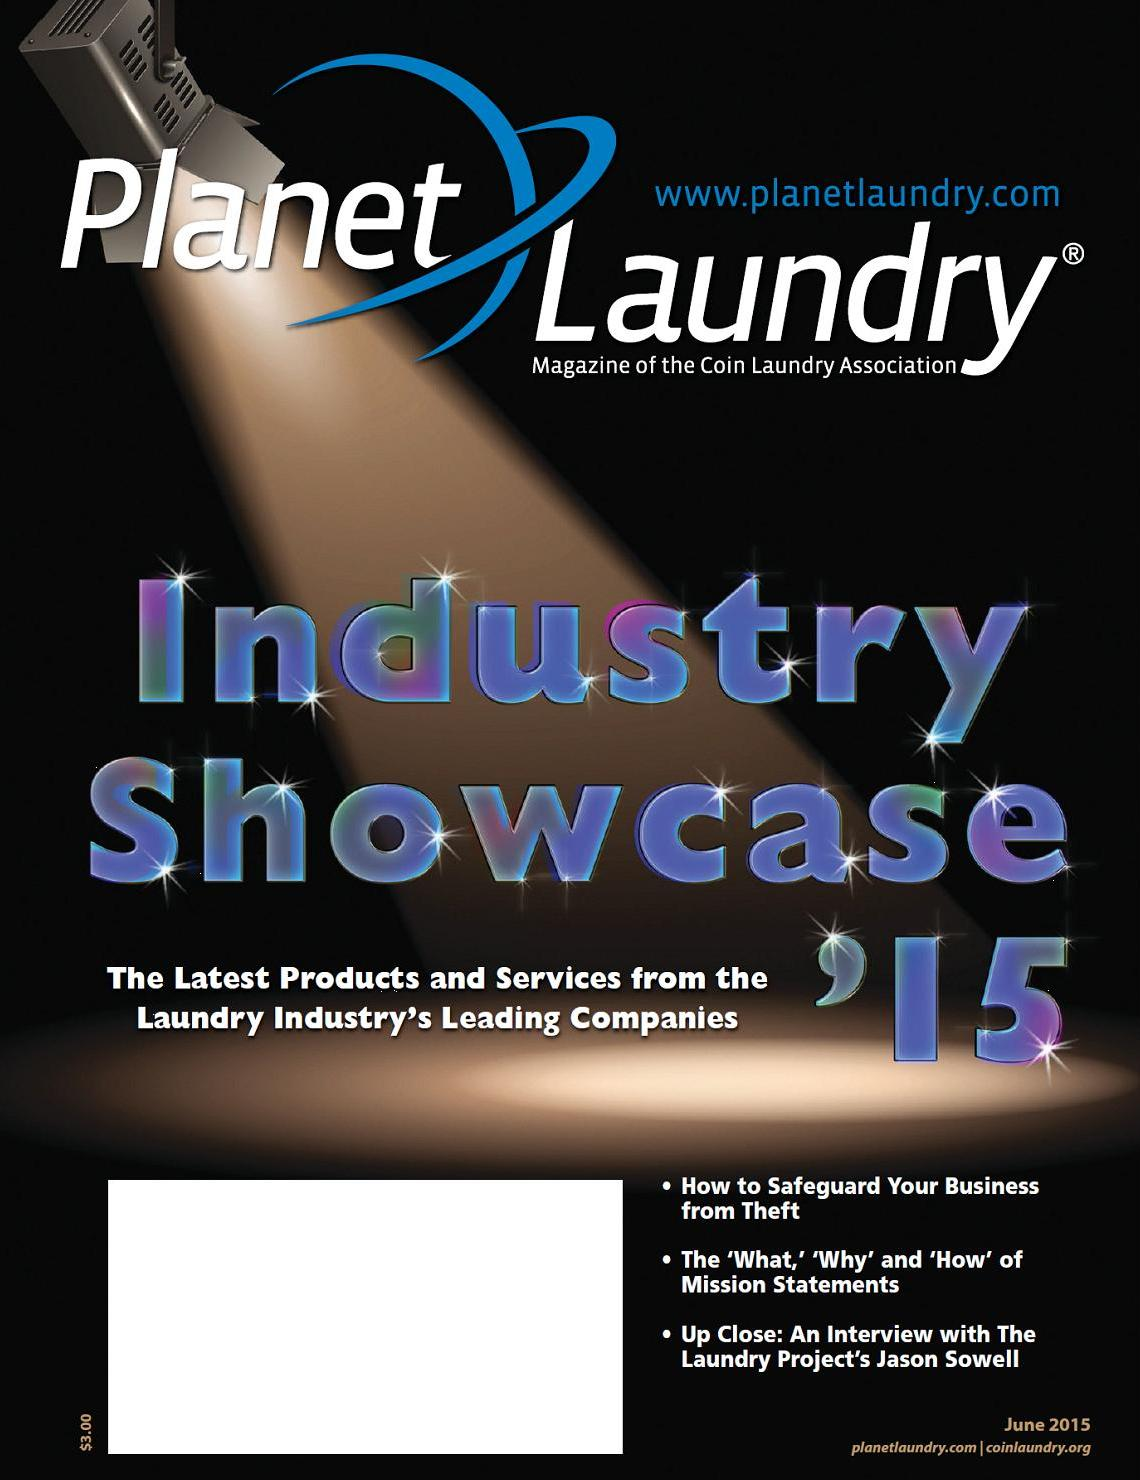 Planet Laundry showcase